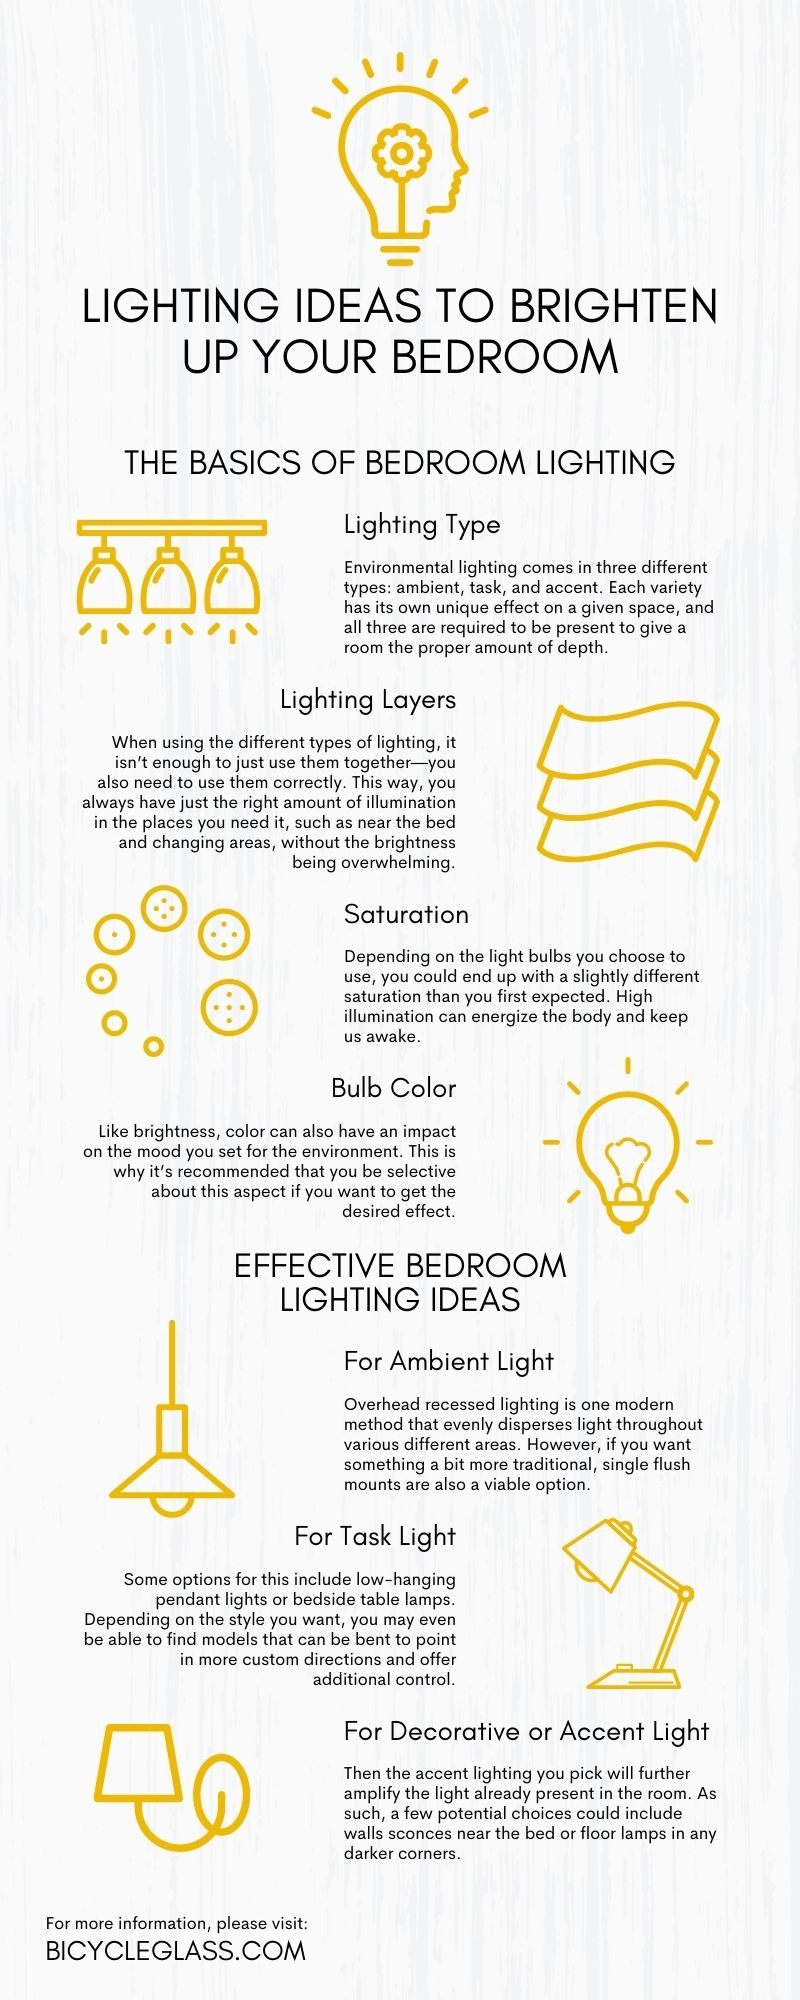 Lighting Ideas To Brighten Up Your Bedroom